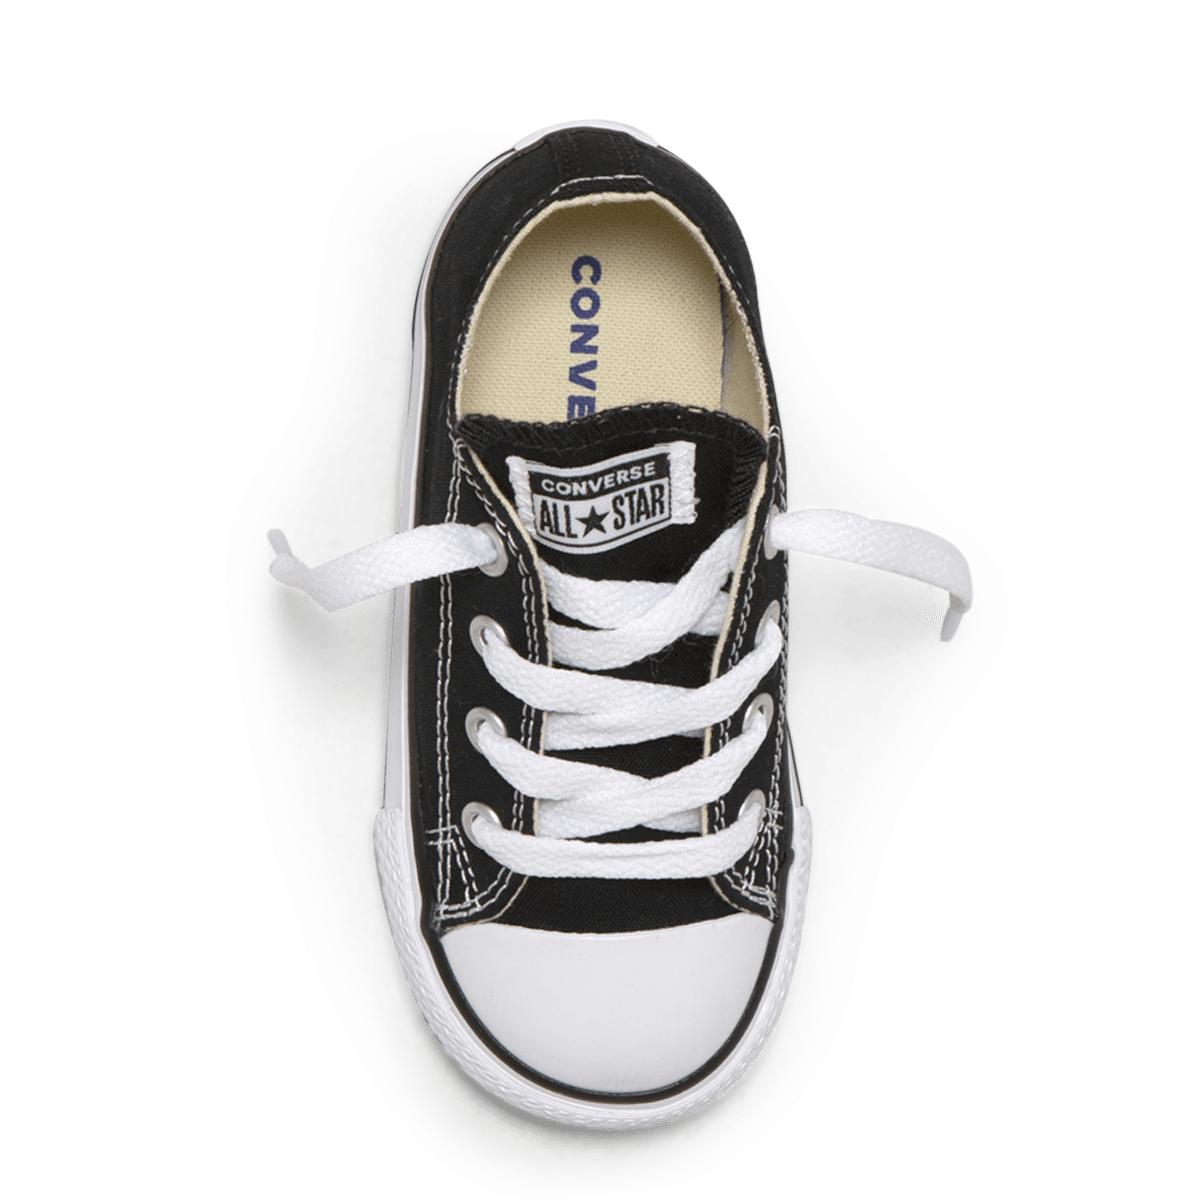 Chuck Taylor All Star Toddler Low Top black top image